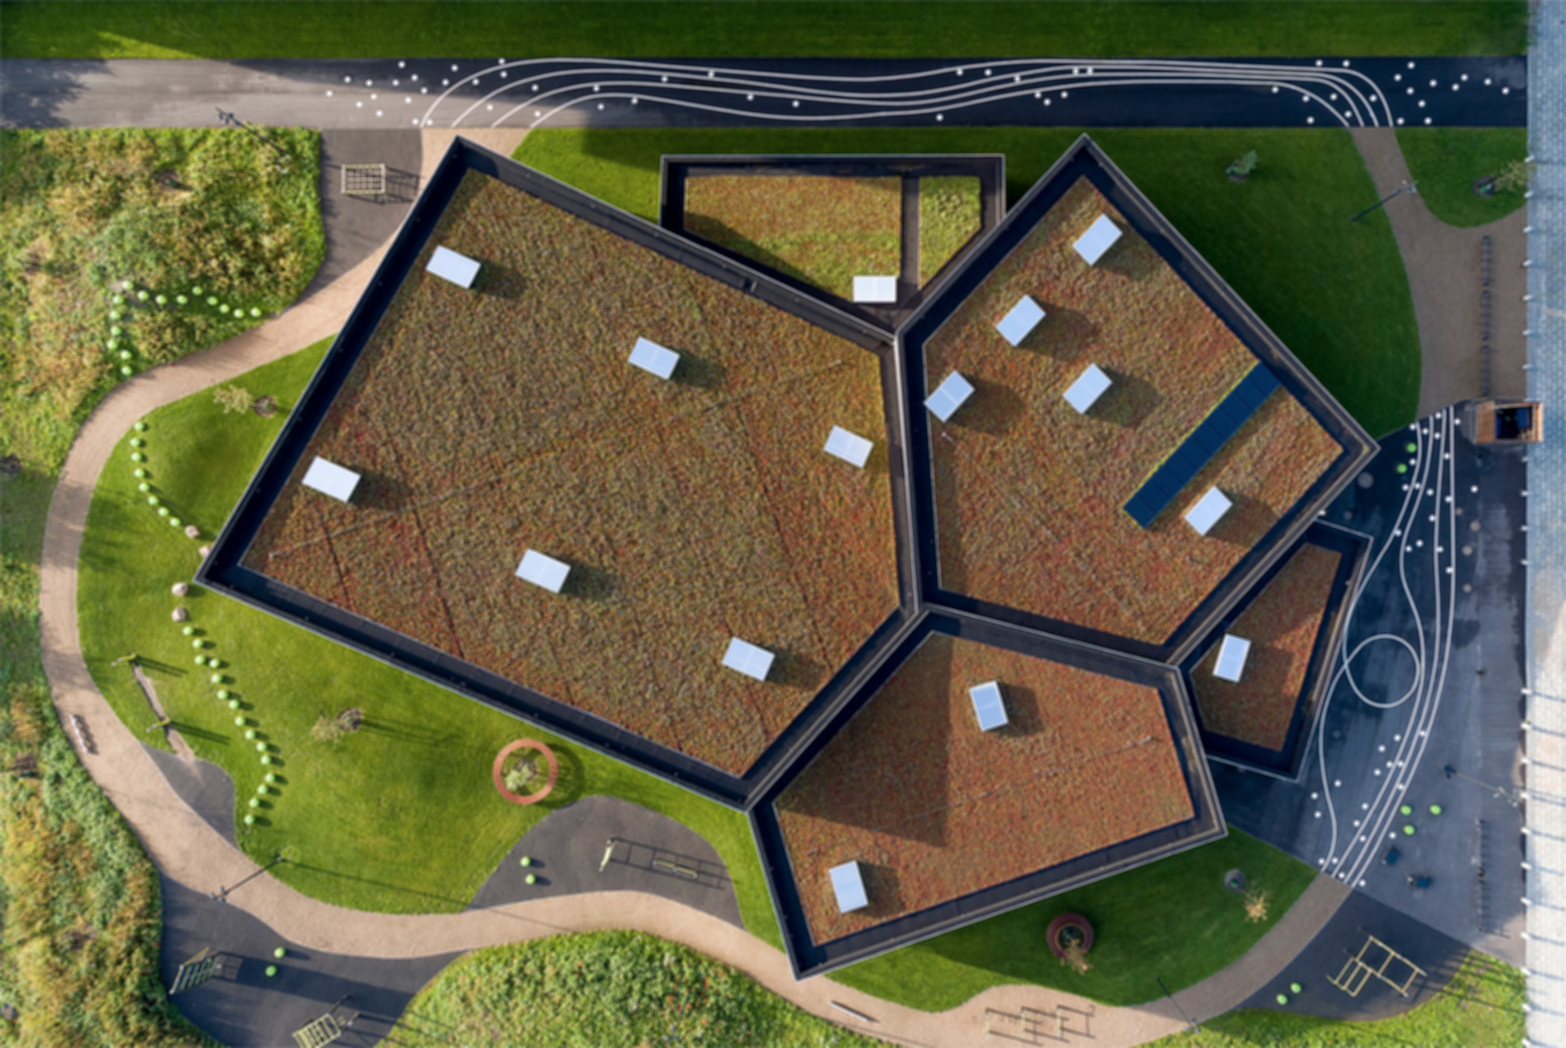 Ørestad Multi Sports Facility - Bird's Eye View